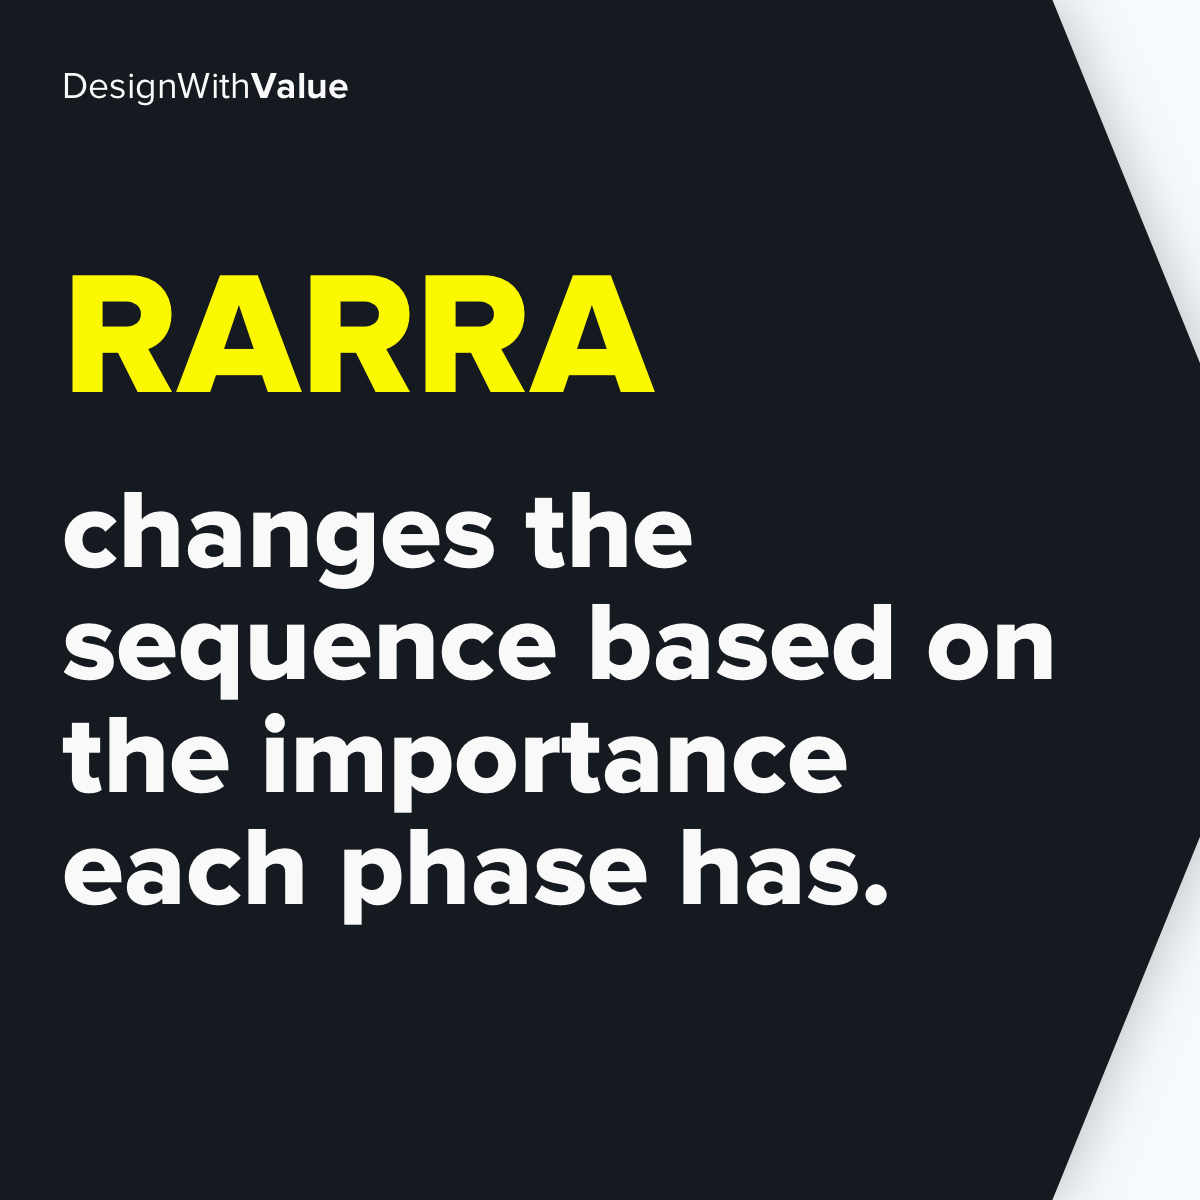 RARRA changes the sequence based on the importance each phase has.